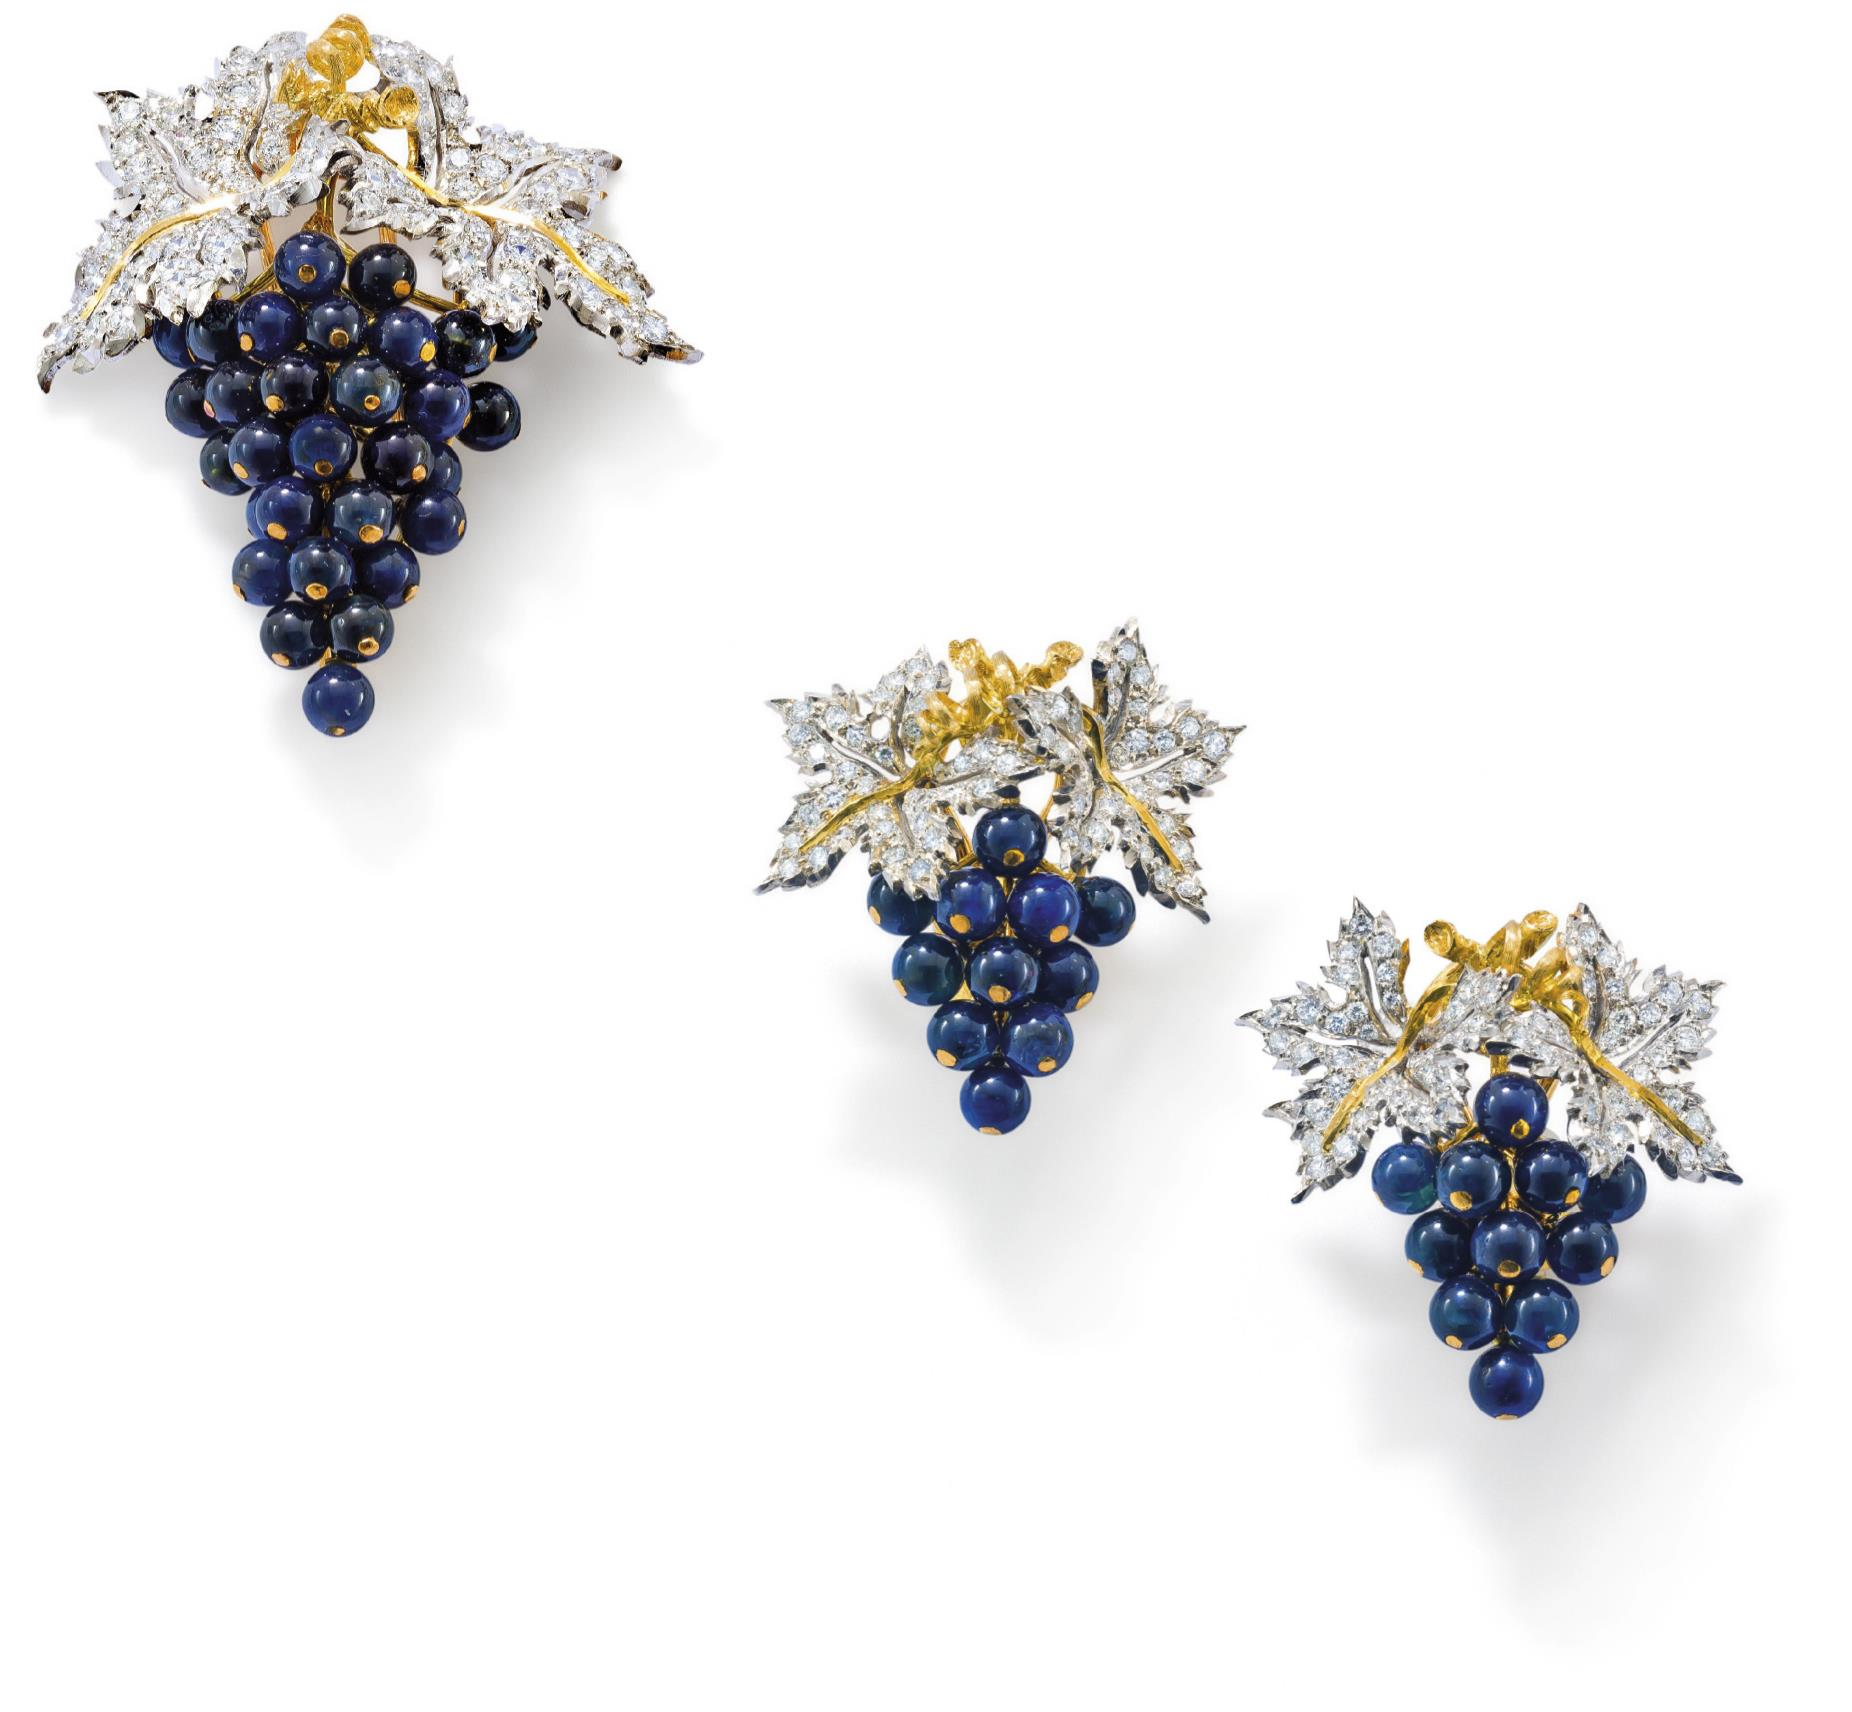 A suite of diamond and sapphire jewellery, by Buccellati